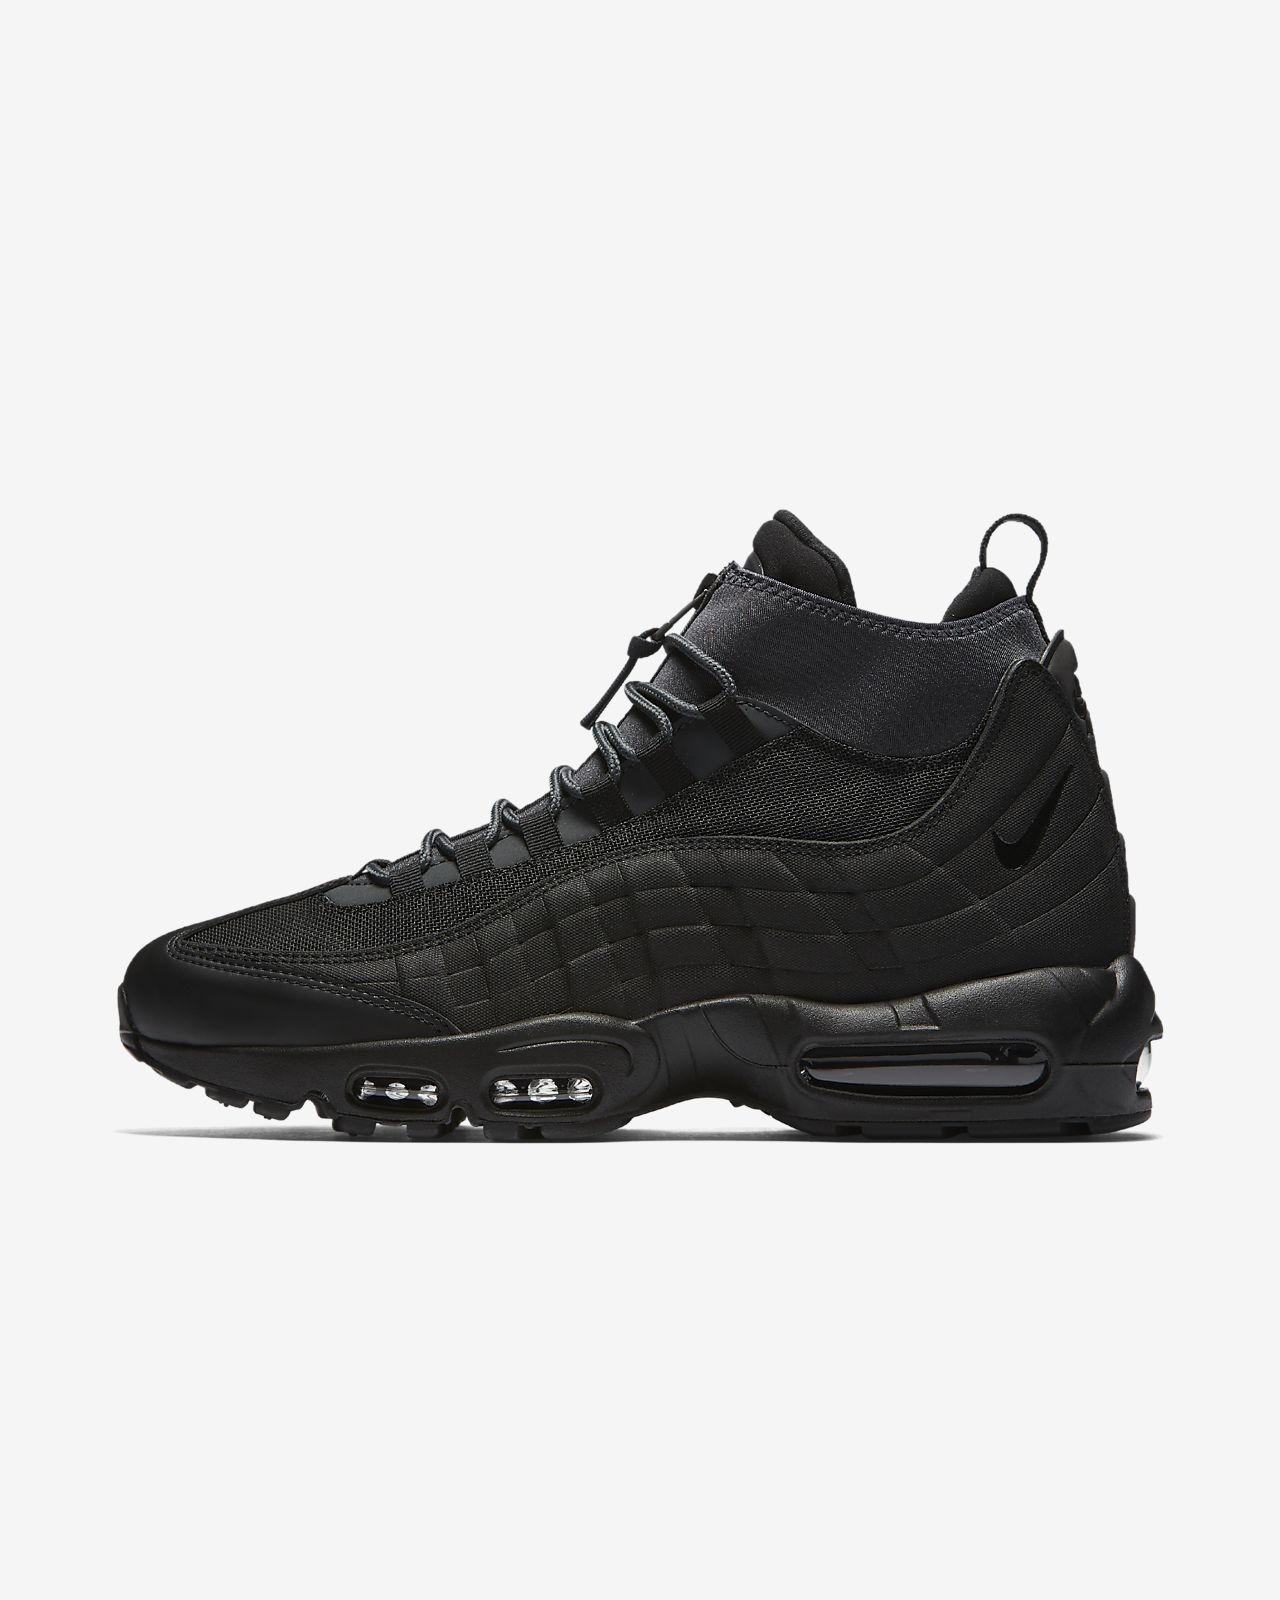 Nike Air Max 95 SneakerBoot Botes - Home